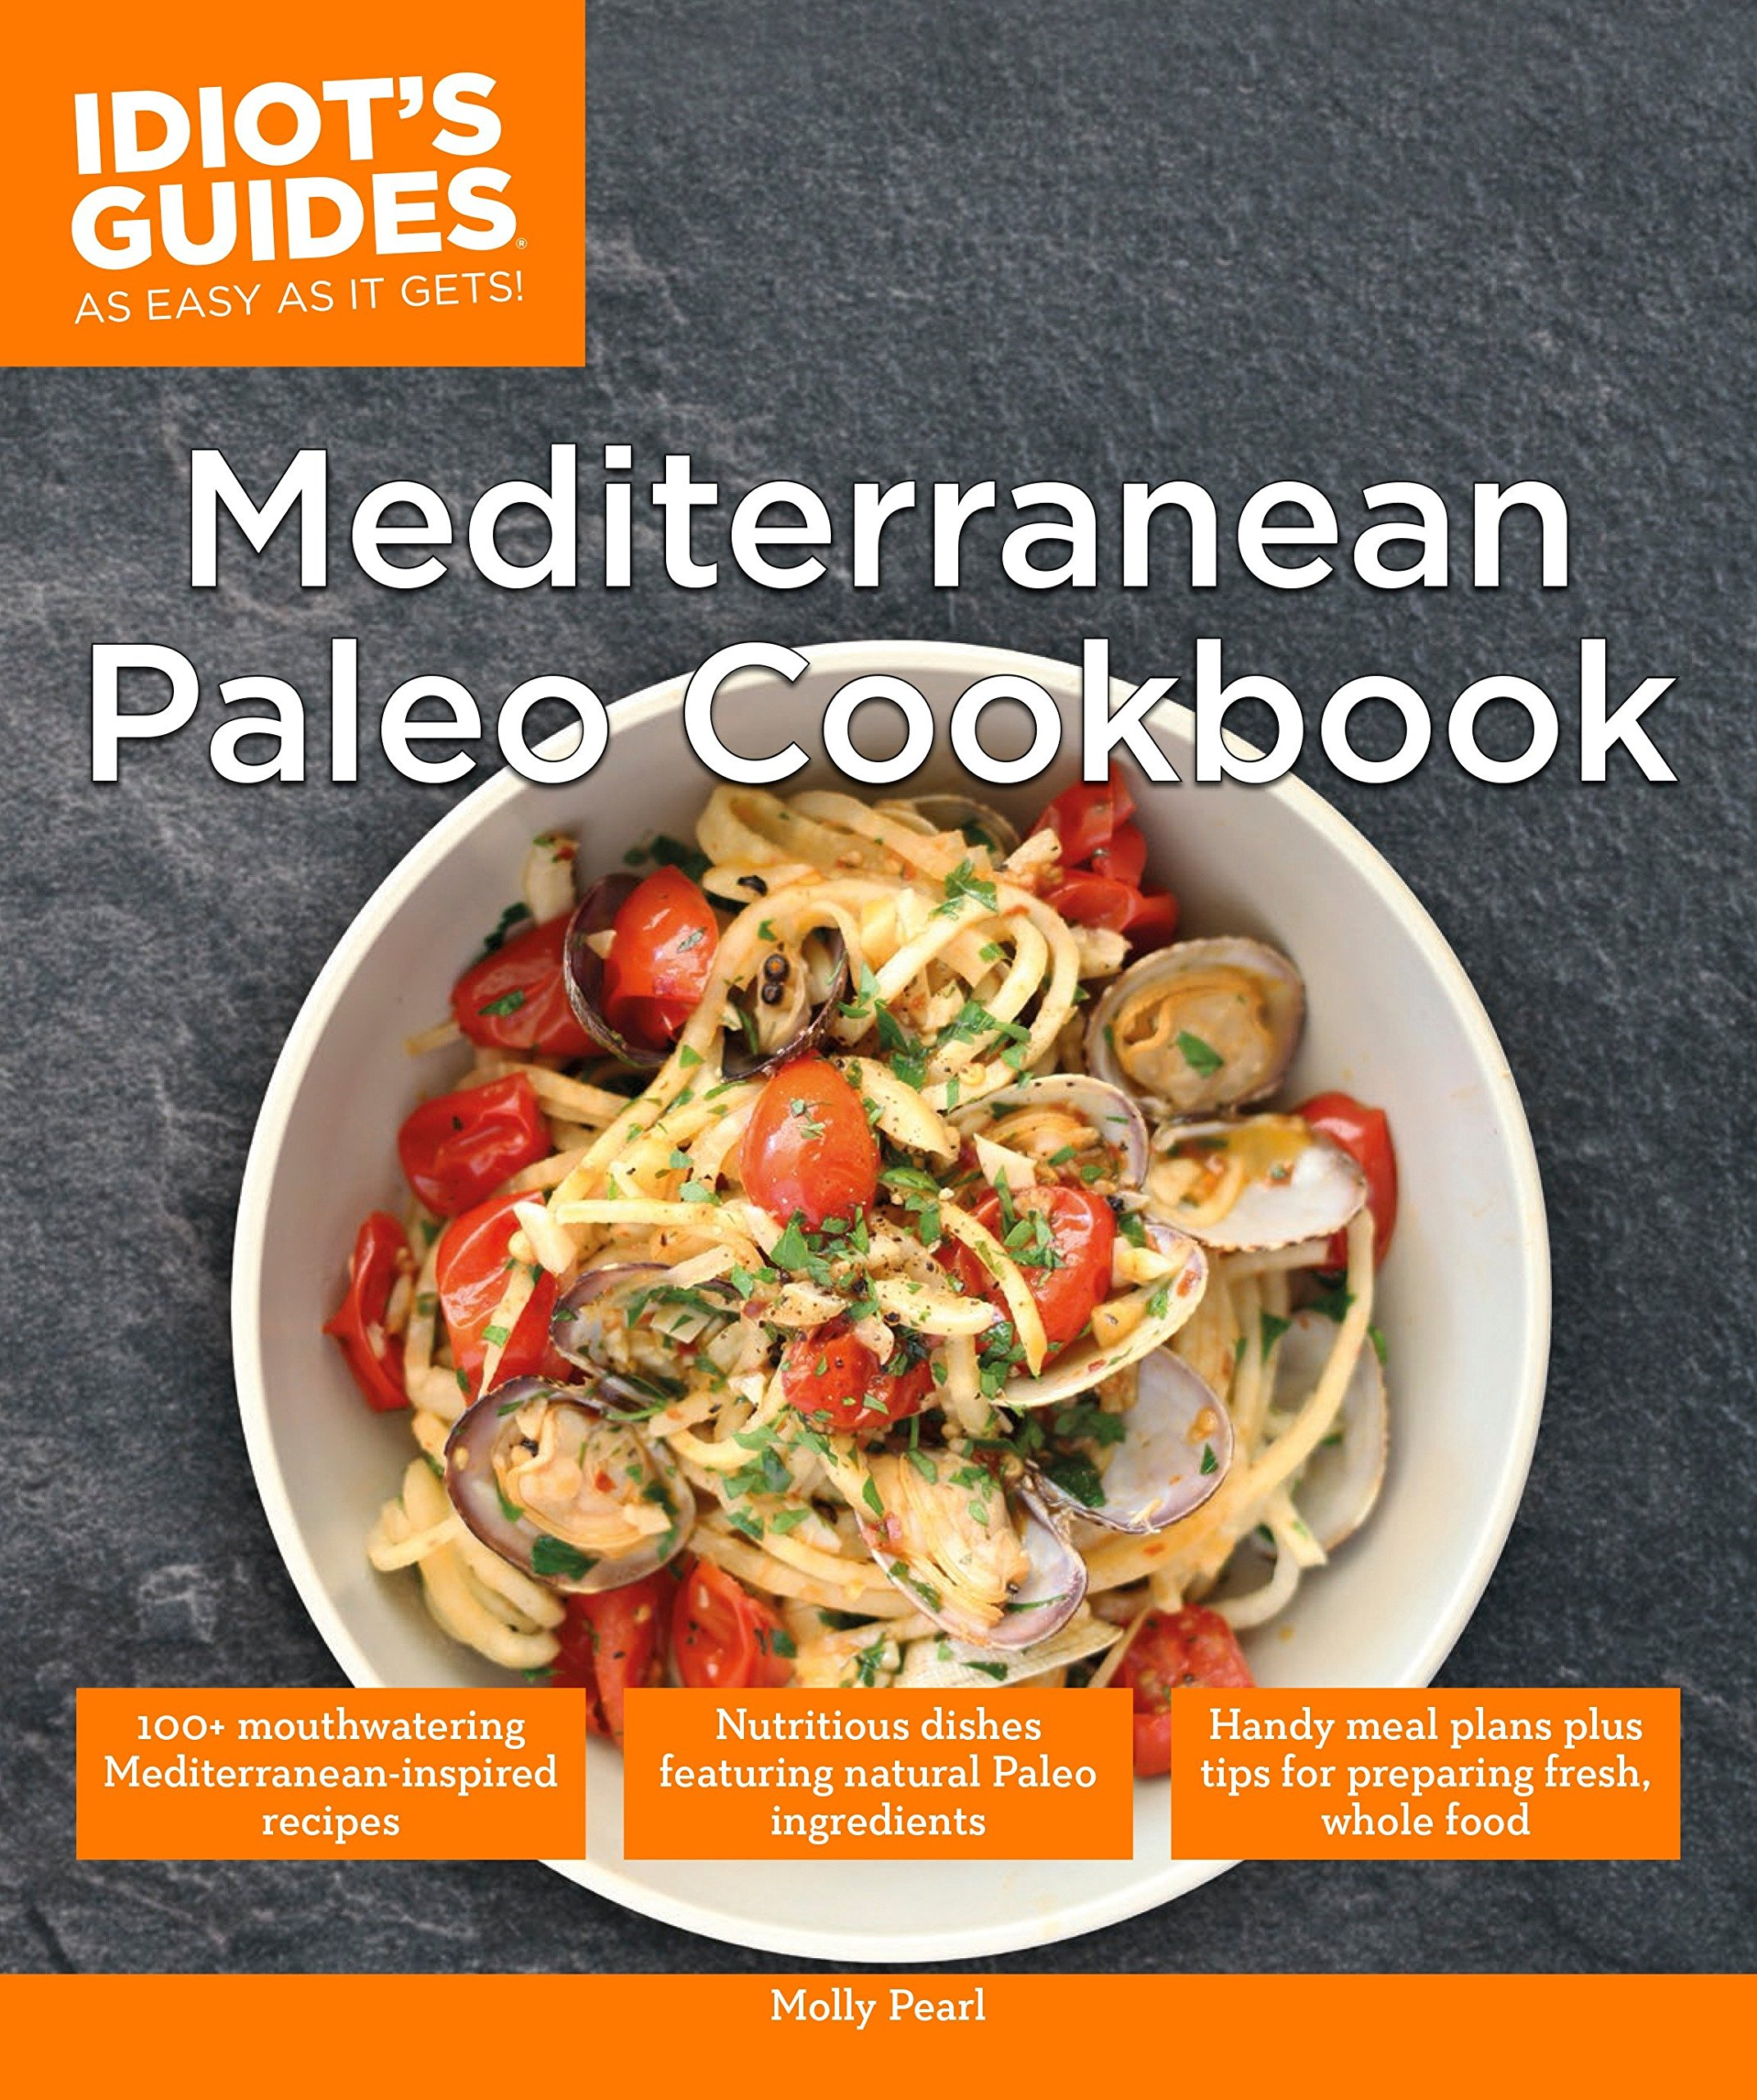 Mediterranean Paleo Cookbook (Idiot's Guides) by Alpha